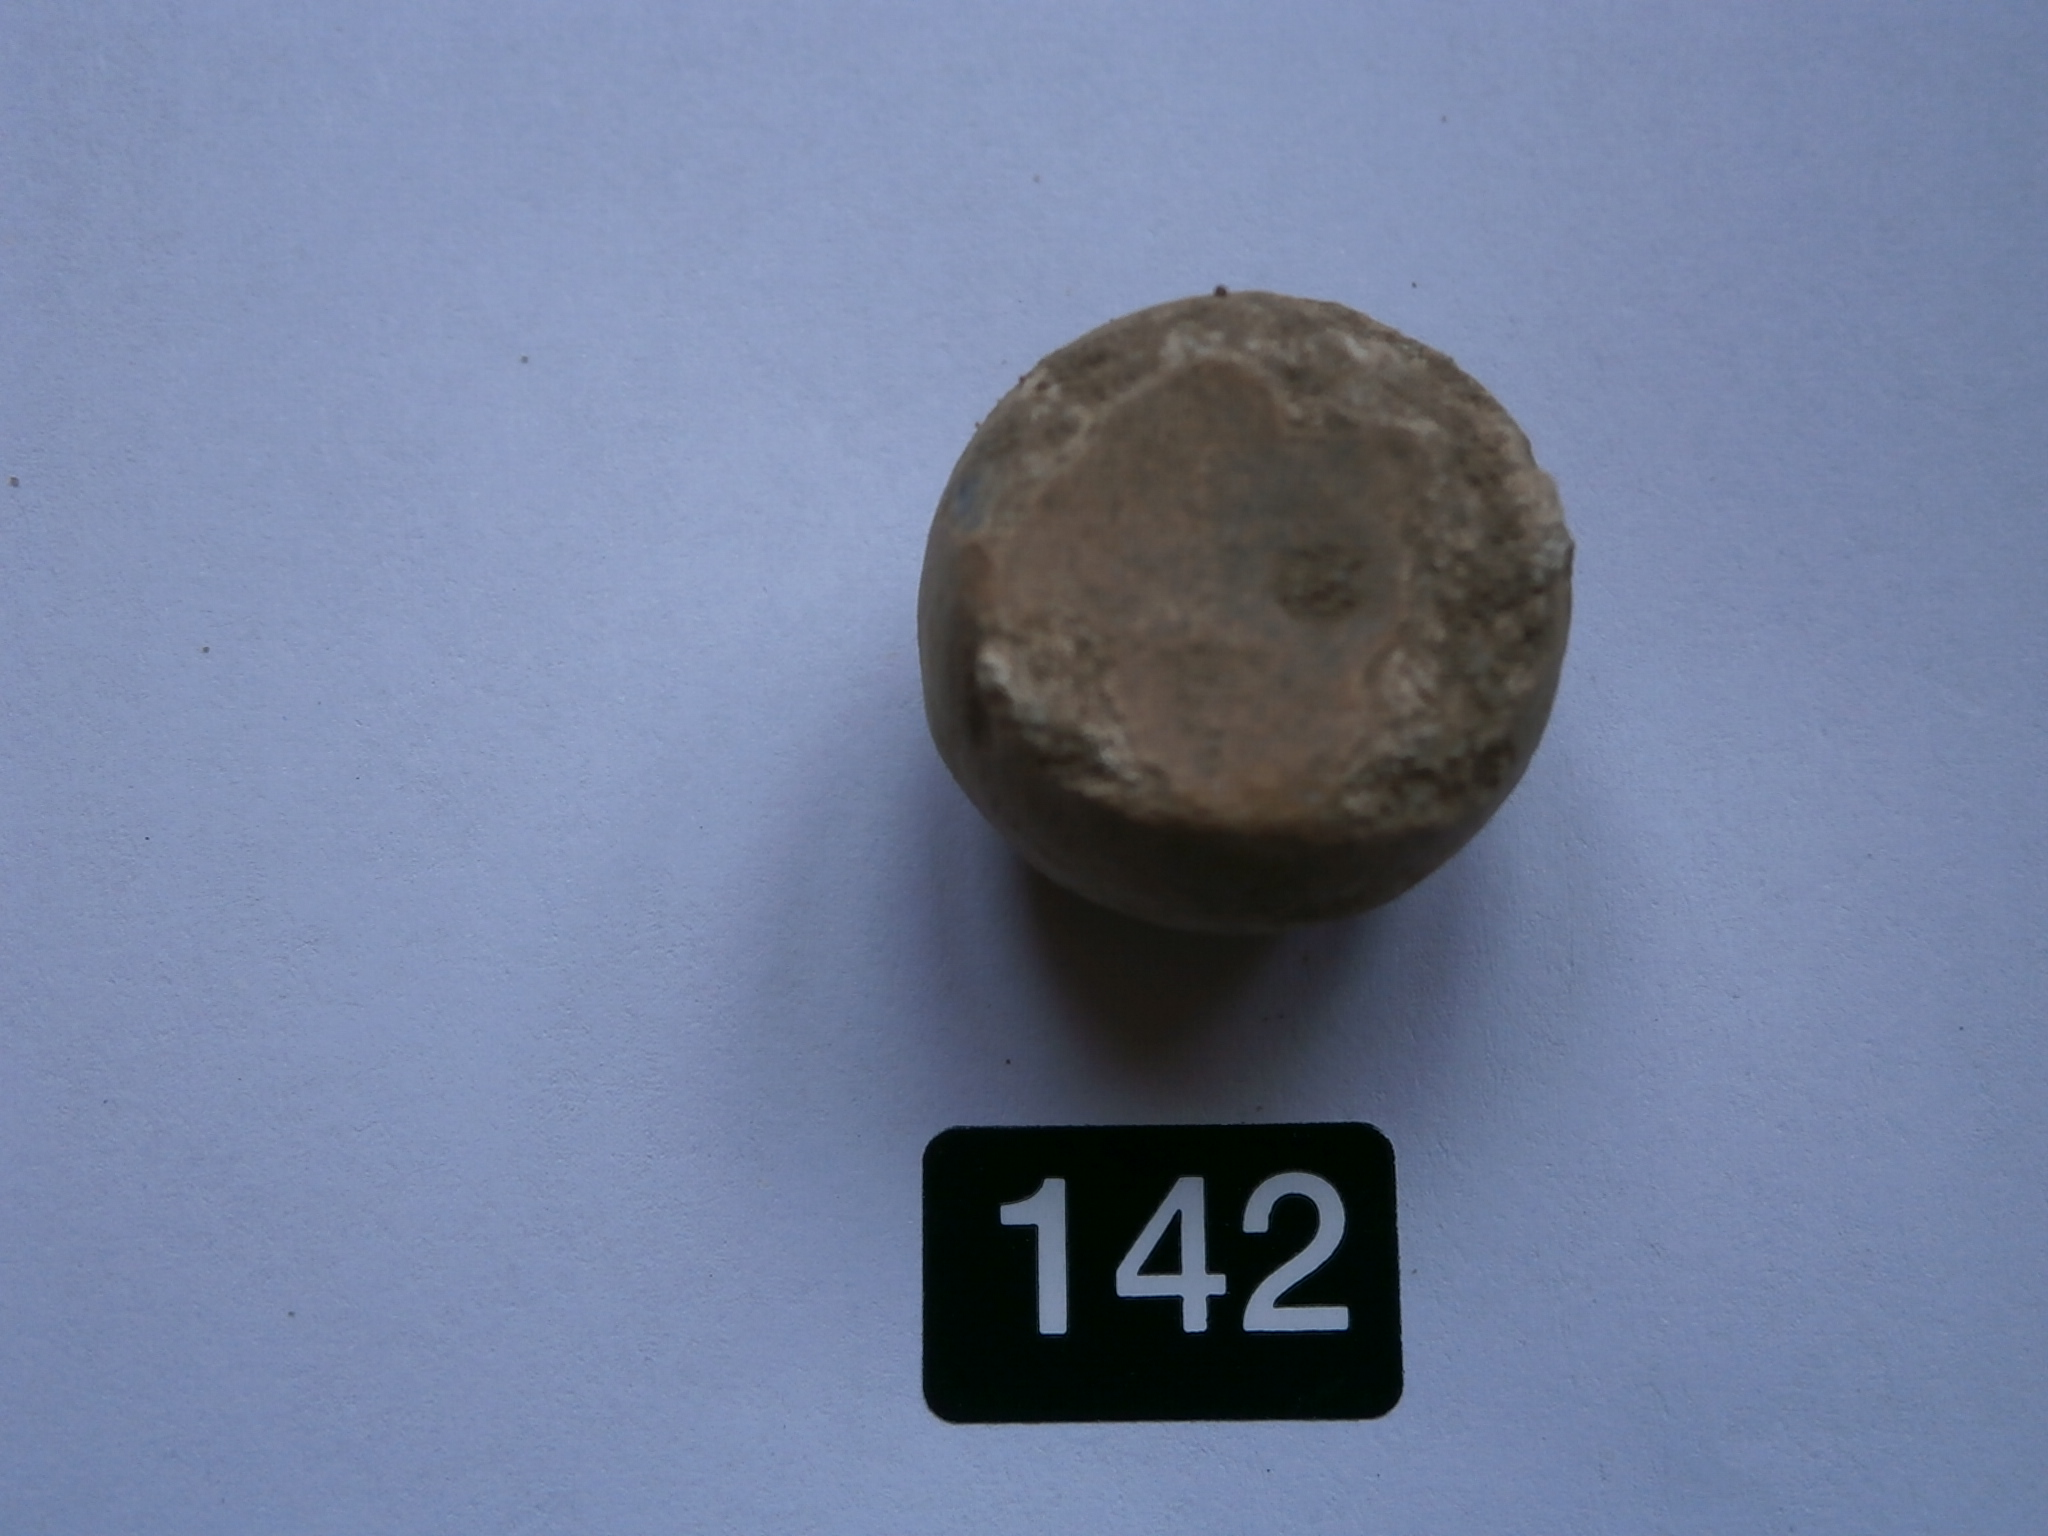 Multi load fired musket ball